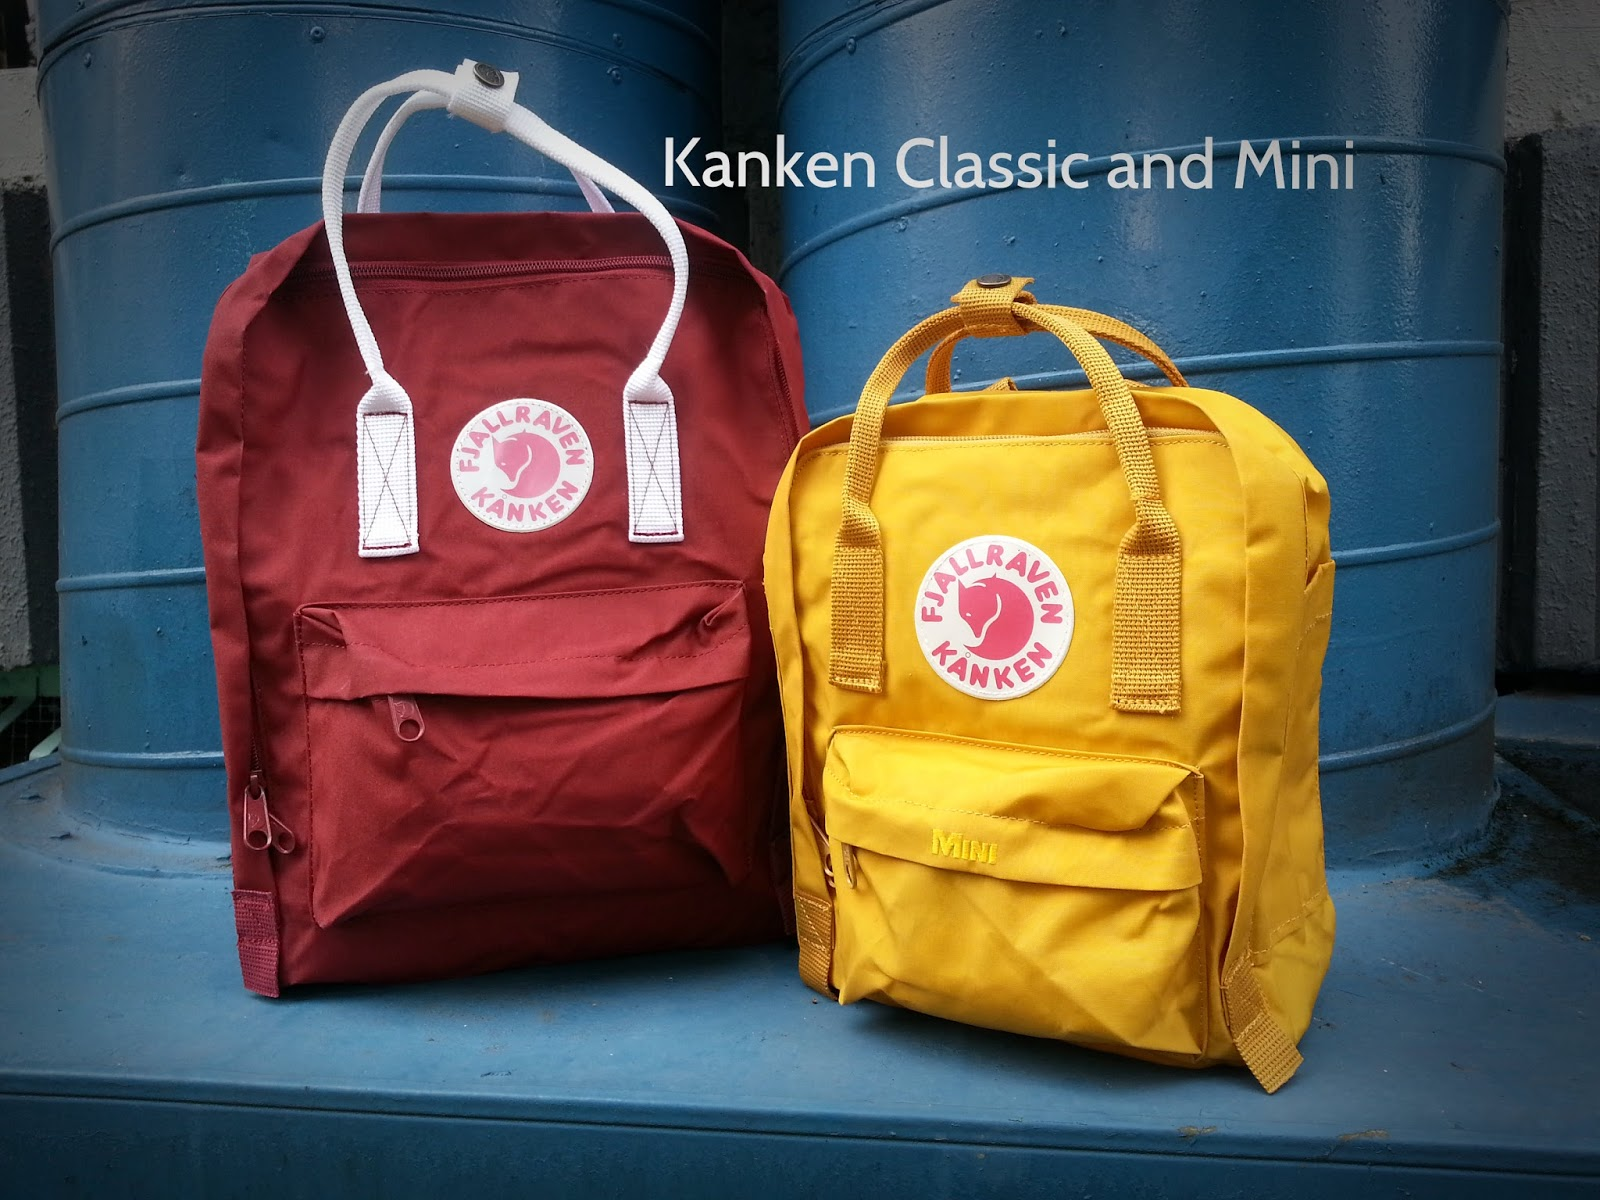 fjallraven kanken mini vs classic